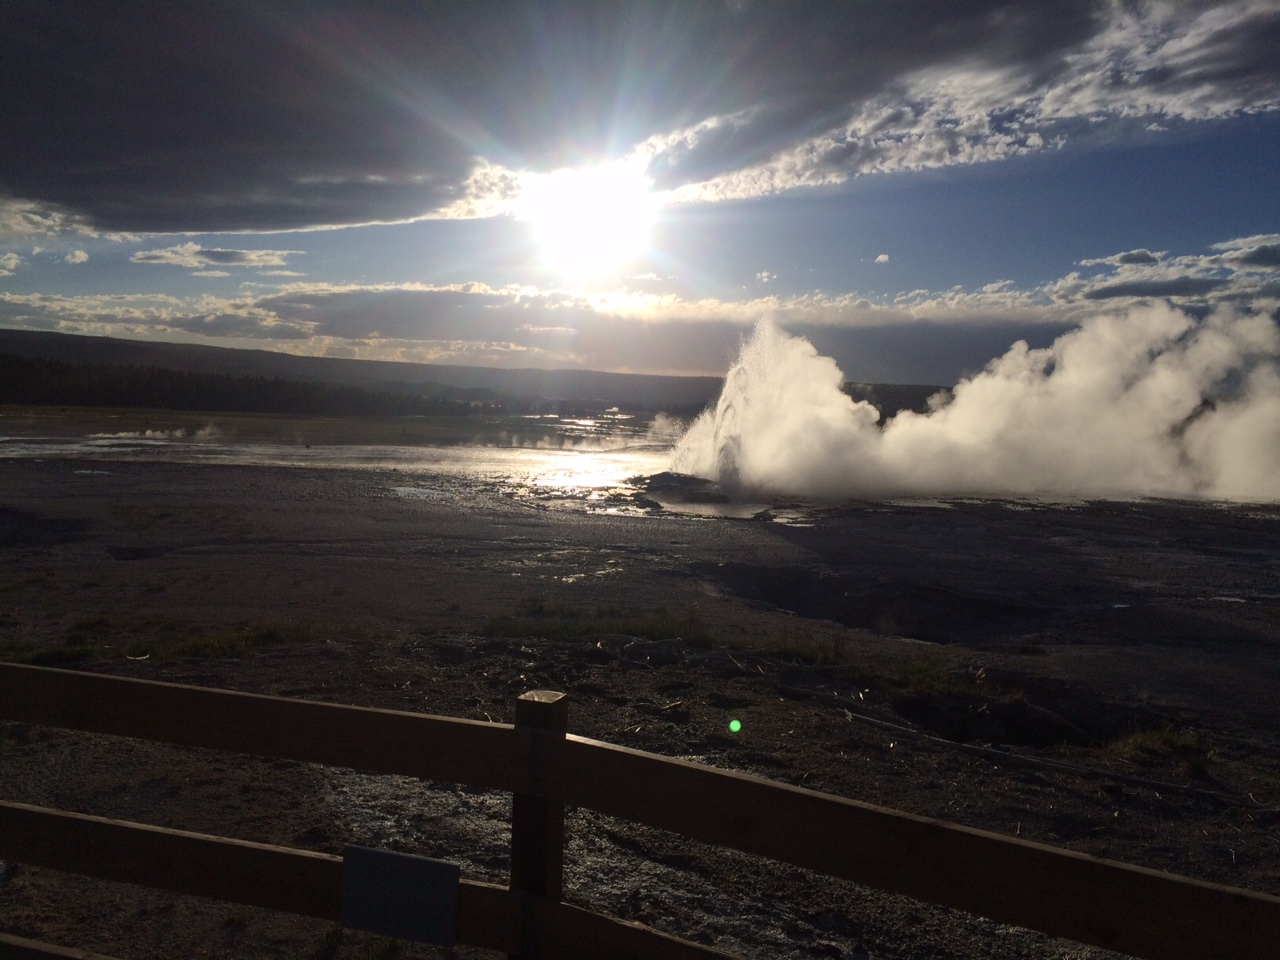 Here is one of the smaller geysers in Yellowstone National Park.